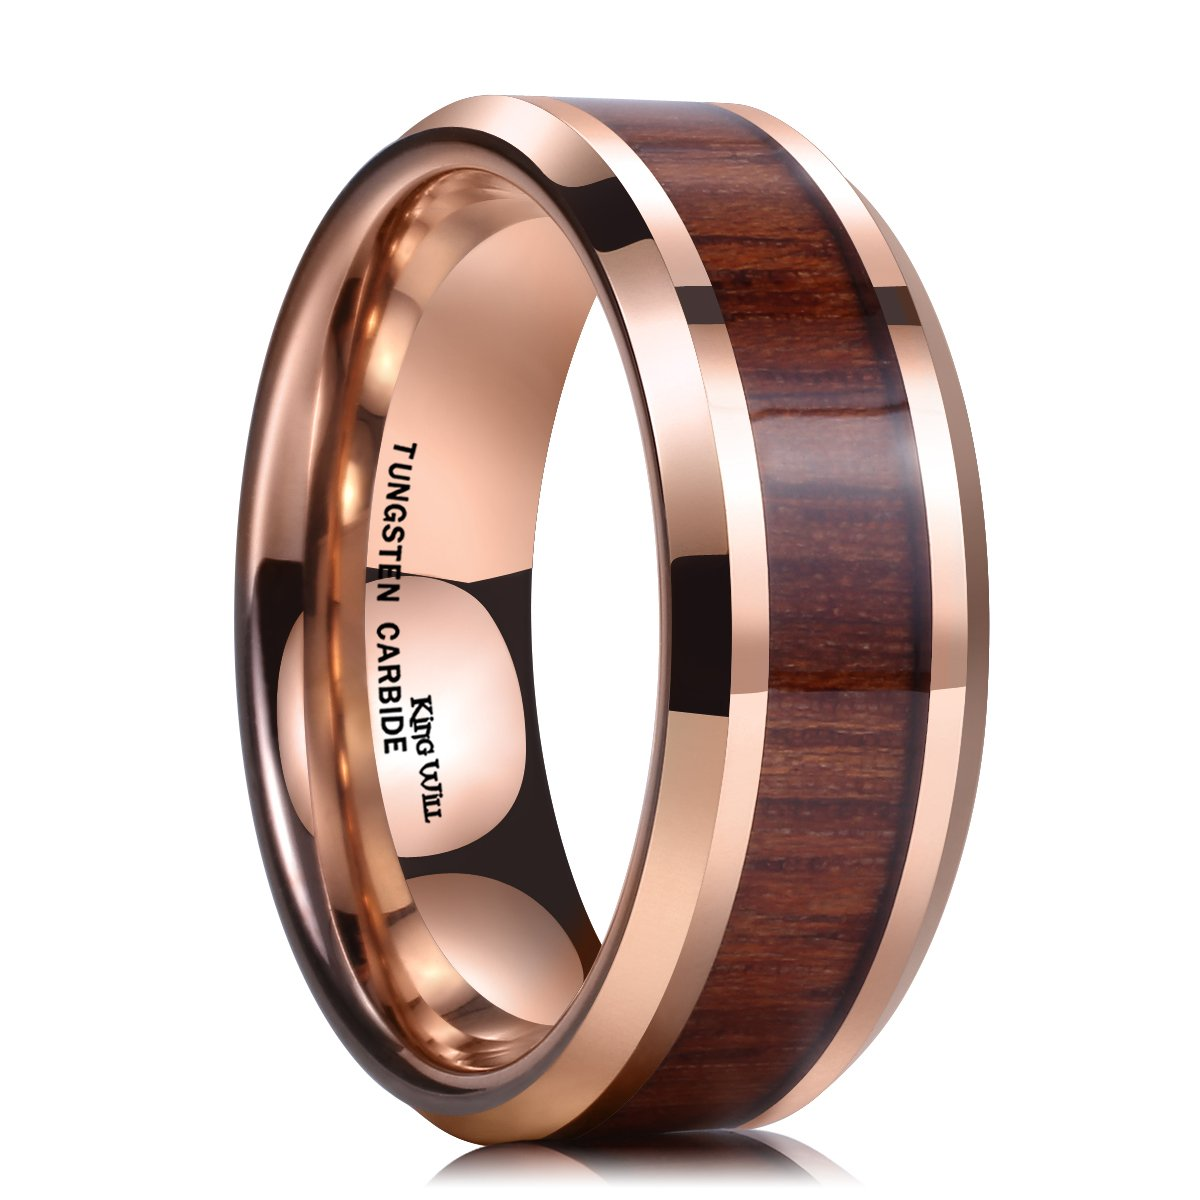 King Will NATURE Koa Wood Inlay Tungsten Carbide Wedding Ring 8mm Rose Gold High Polished Comfort Fit OY-R053-VARIATION